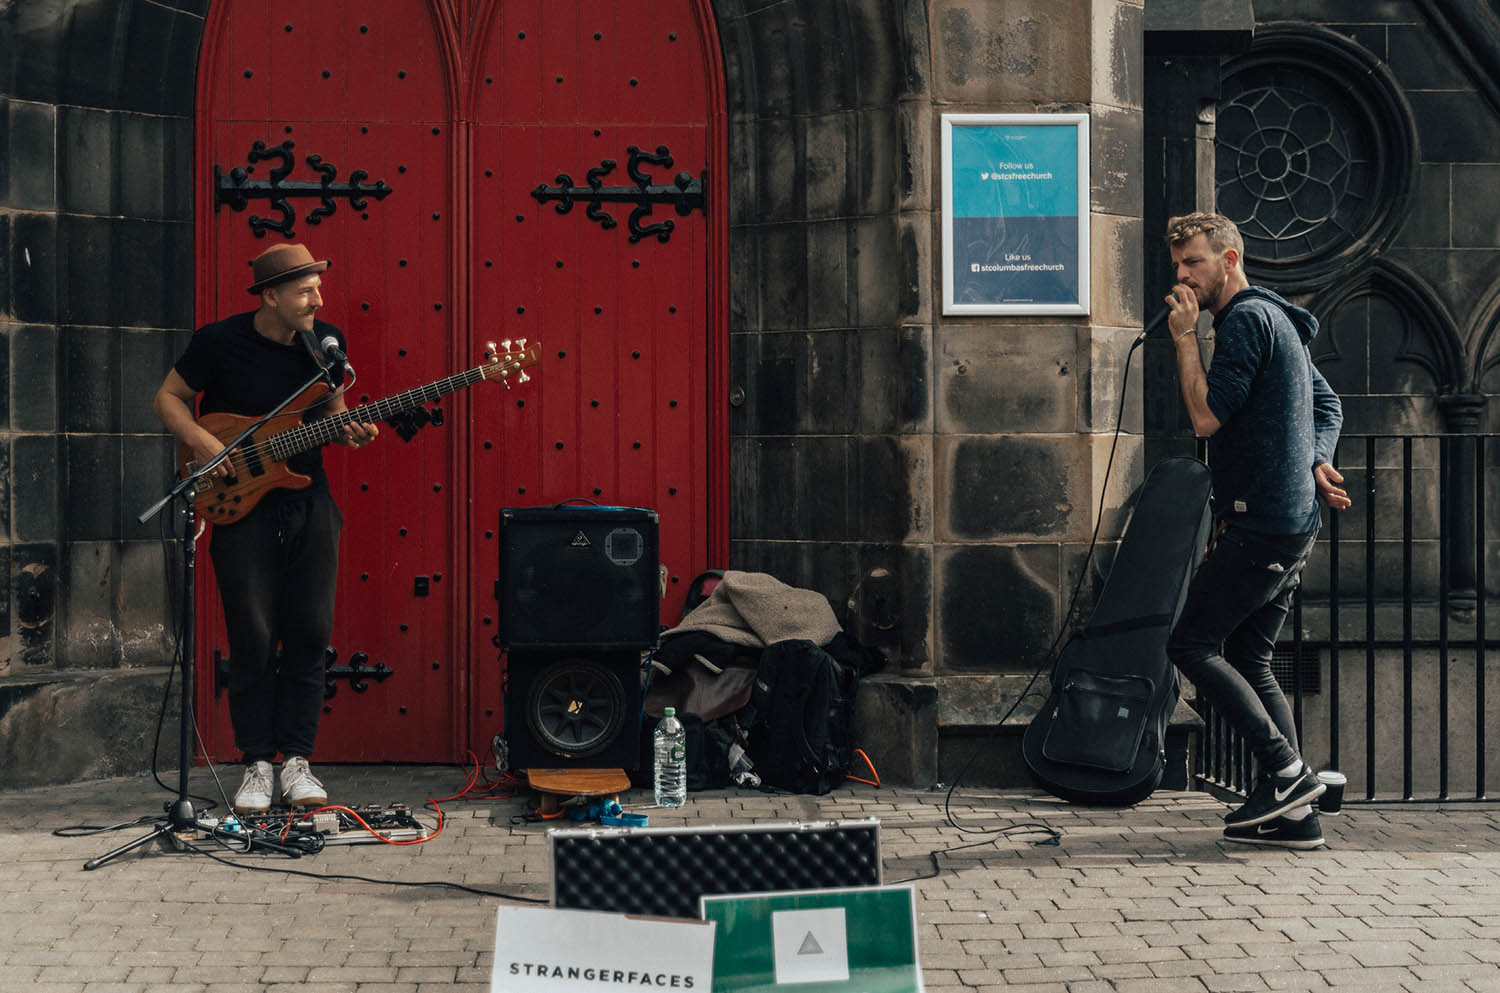 Strangerfaces - Street Performance in Edinburgh